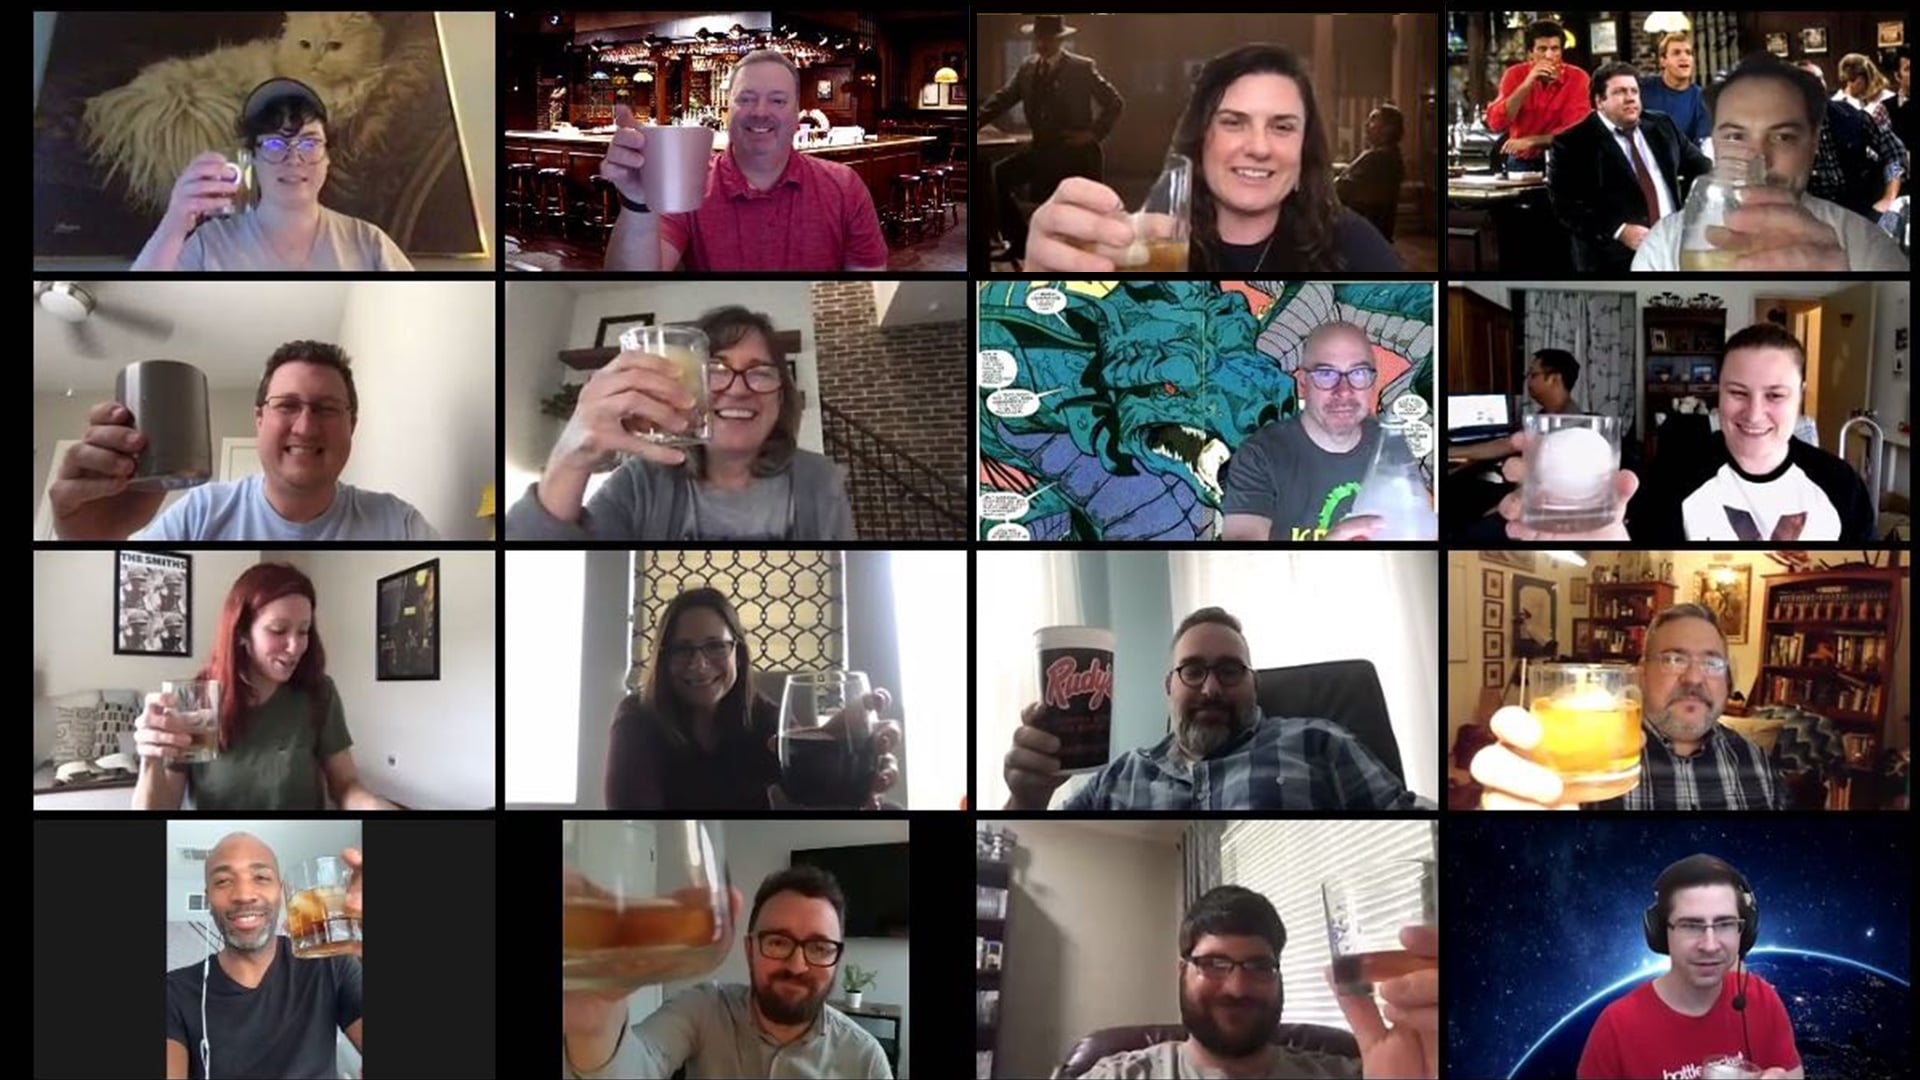 Tips for Building Camaraderie While Working Remotely